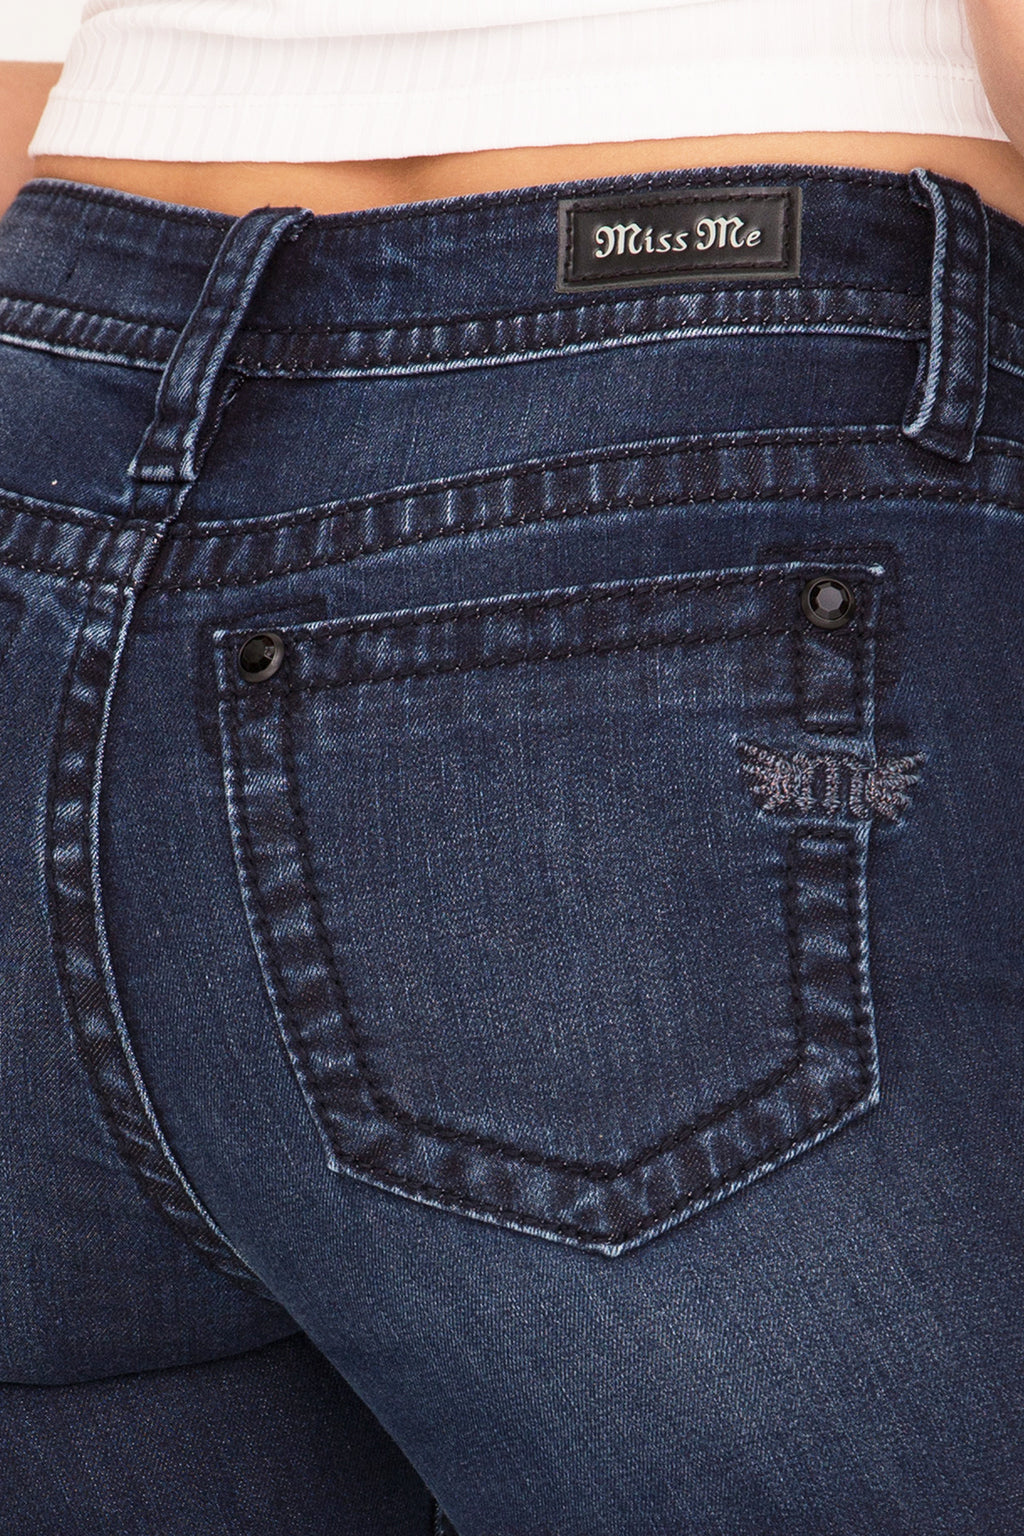 pocket, Dark Blue